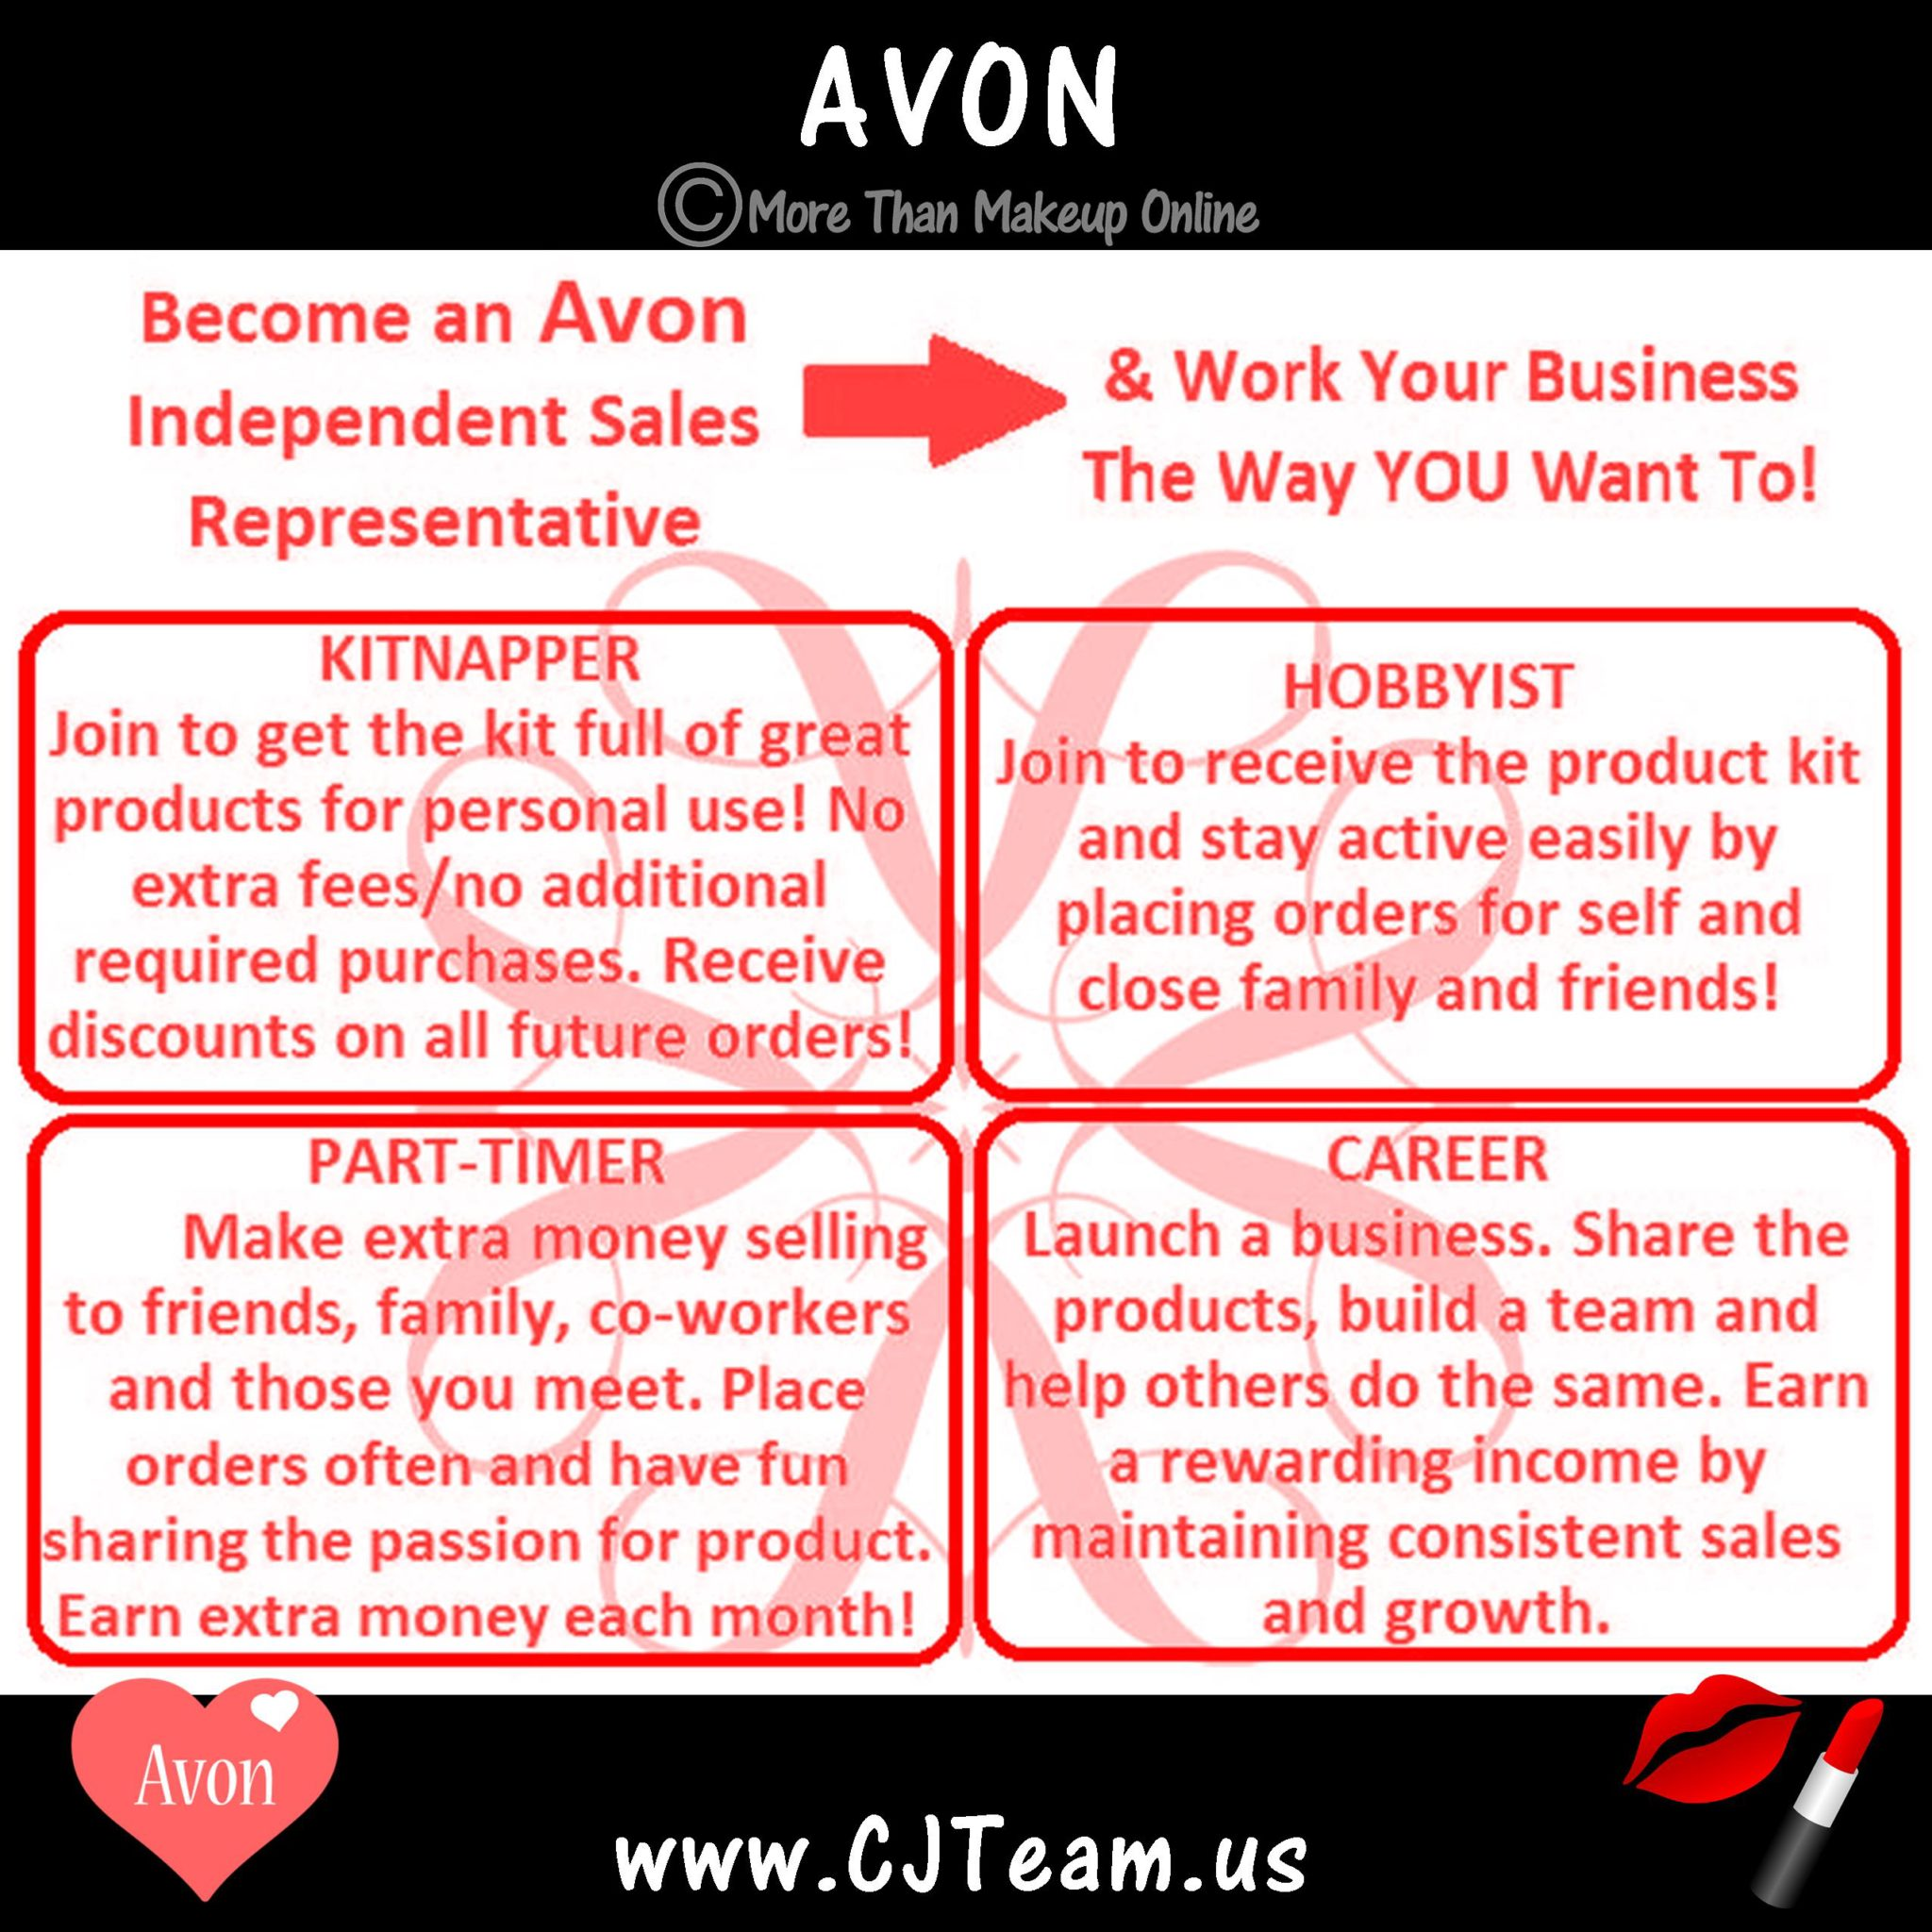 Work an Avon Business the Way YOU Want! - More Than Makeup Online